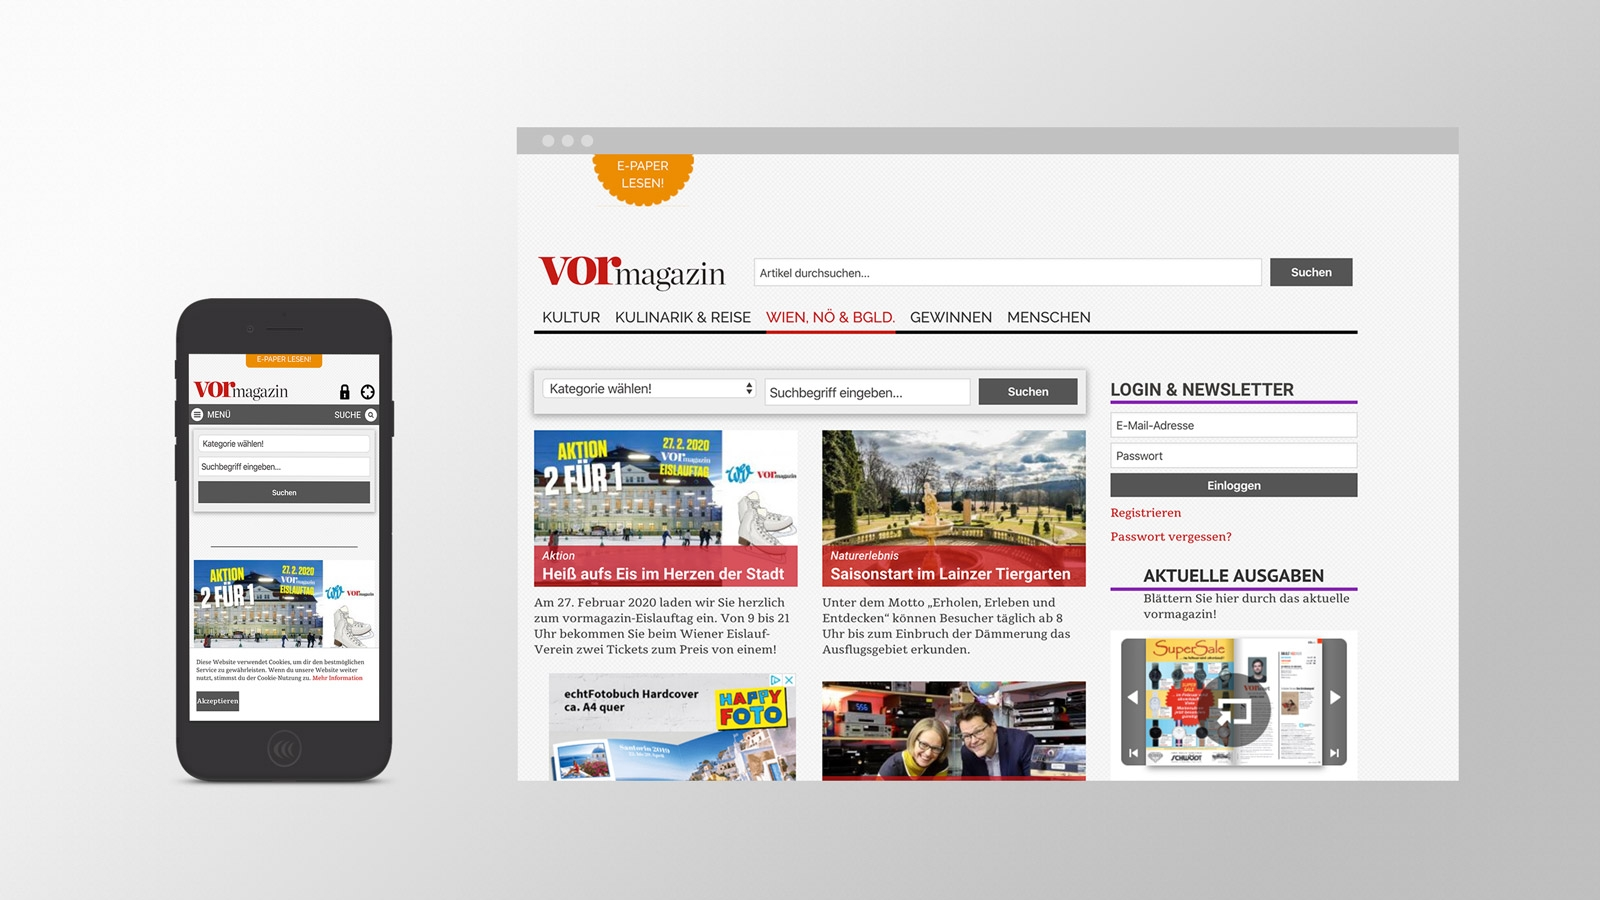 Vormagazin | vormagazin.at | 2014 (Phone Browser) © echonet communication